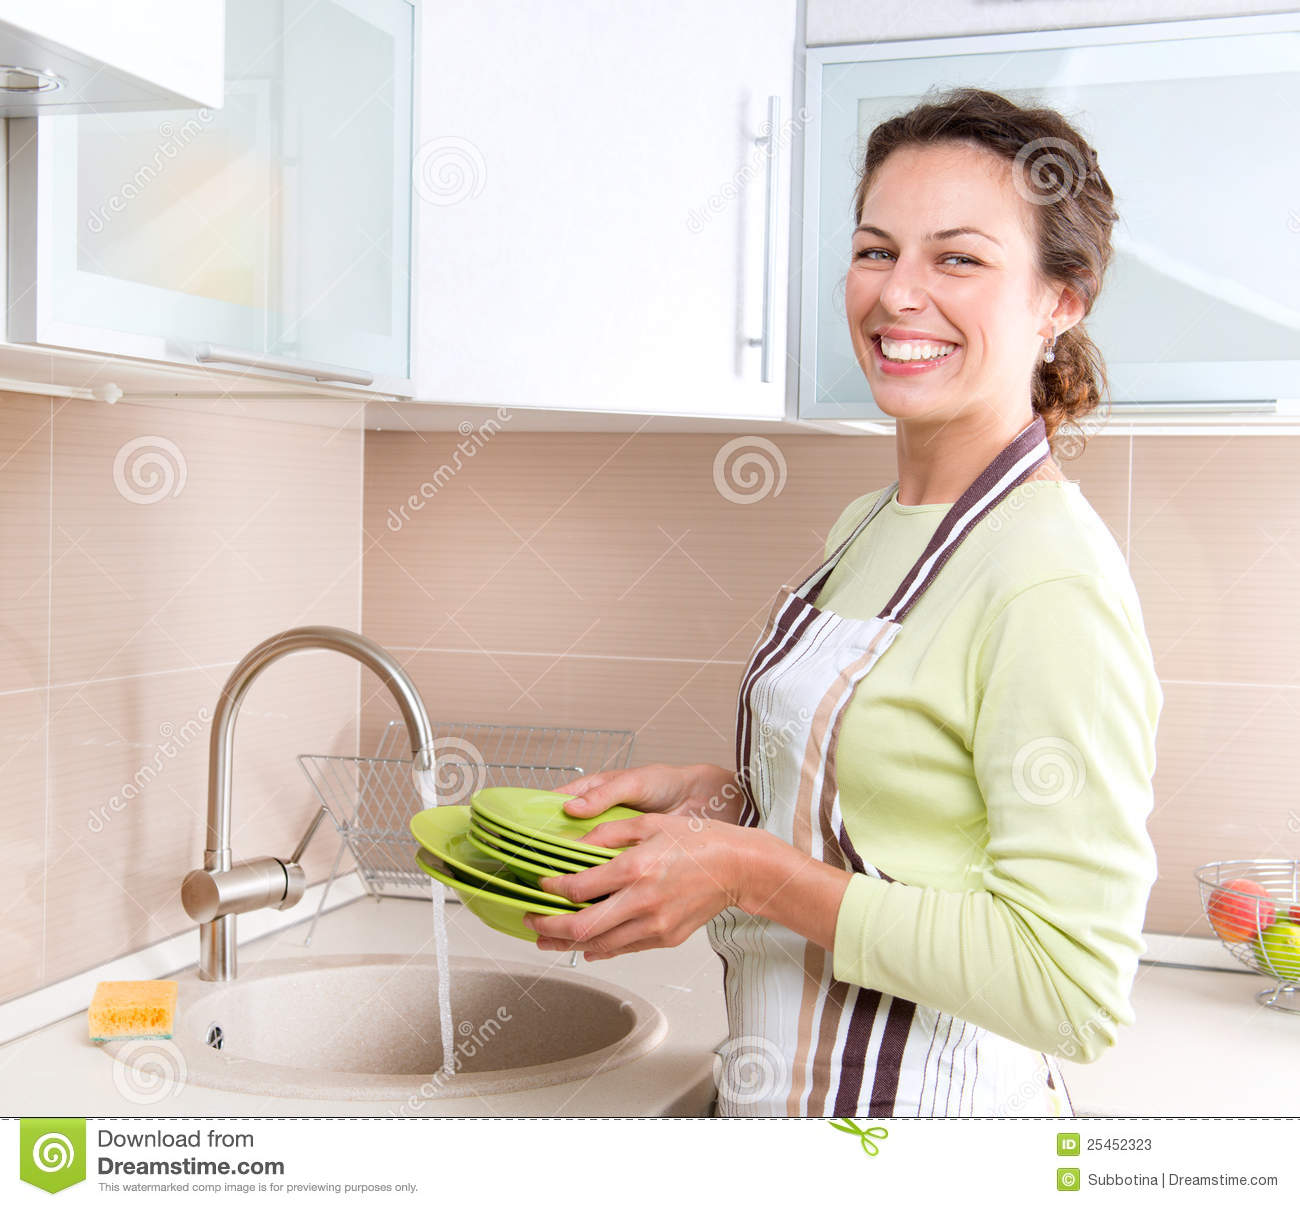 washing dishes process essay Procedure: all employees involved in handling food must wash hands using the   is loading dirty dishes and taking out clean dishes, a thorough hand washing.